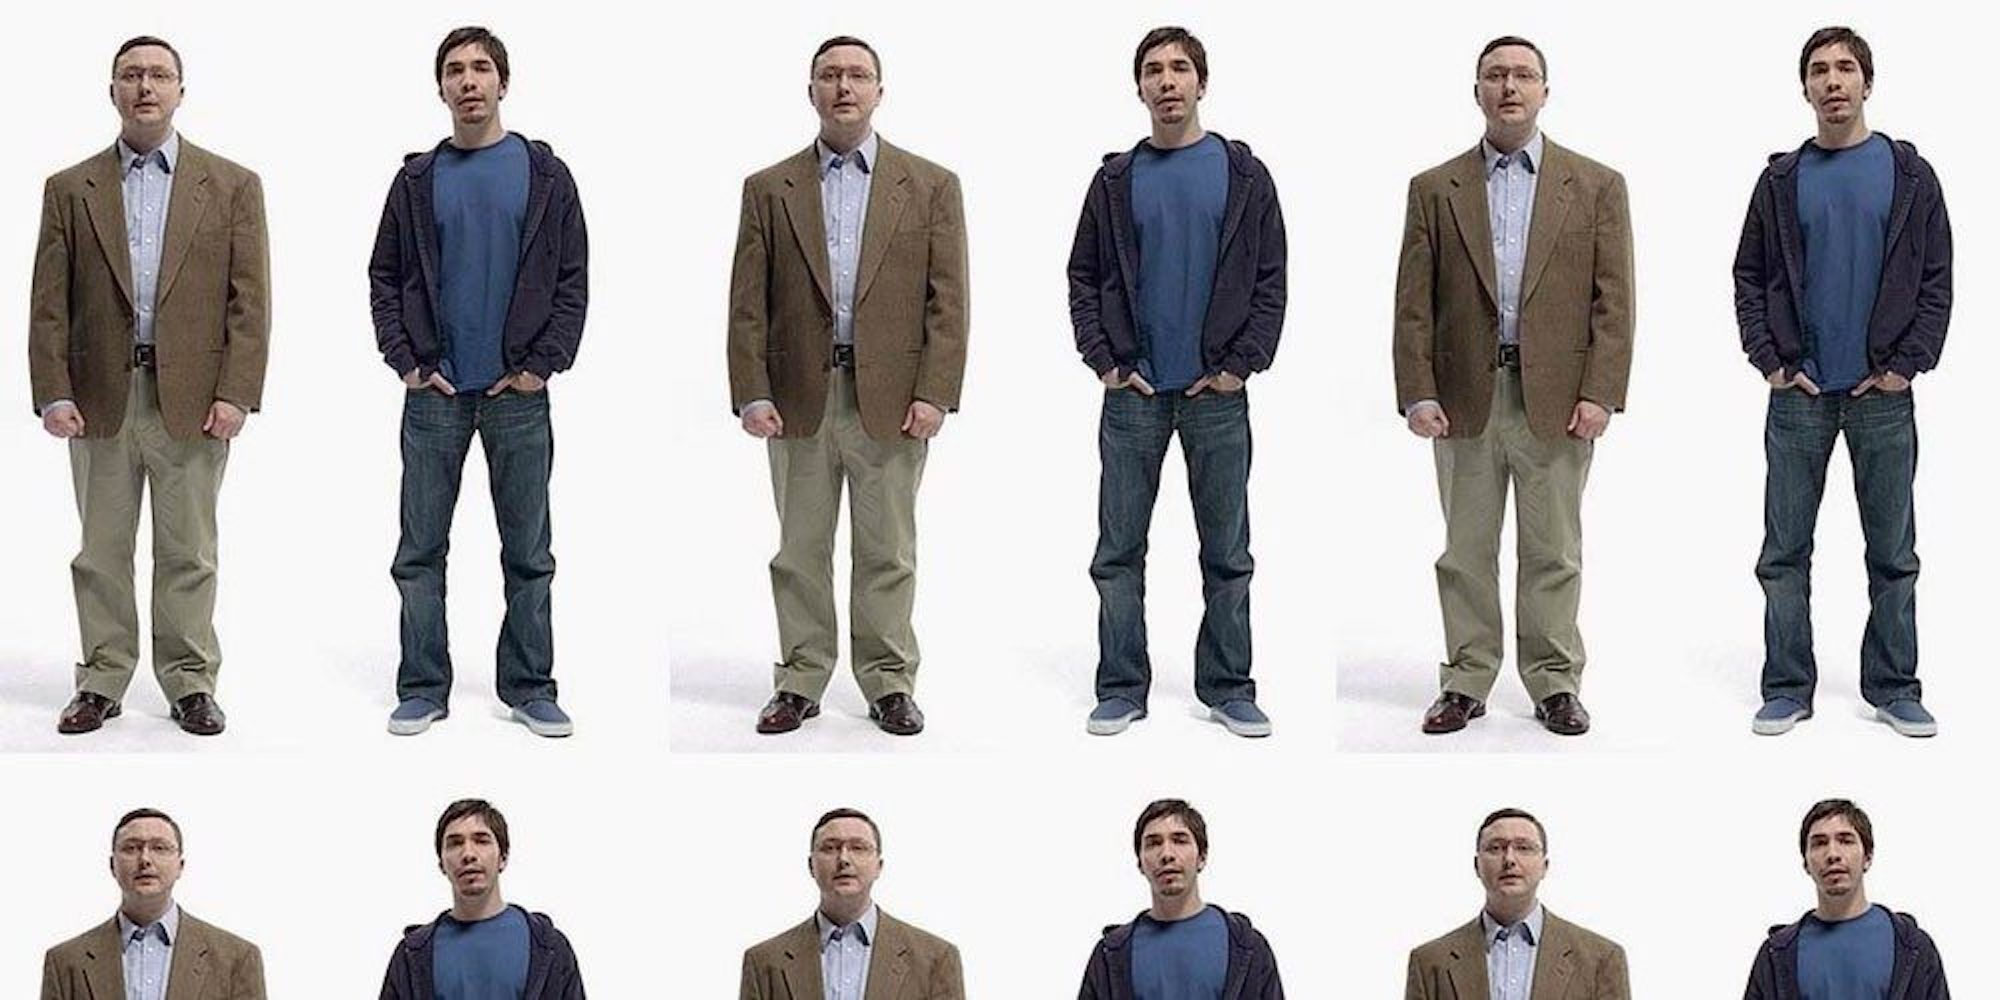 'I'm a Mac' star Justin Long says he filmed 300 ads for Apple, but Steve Jobs rejected most of them